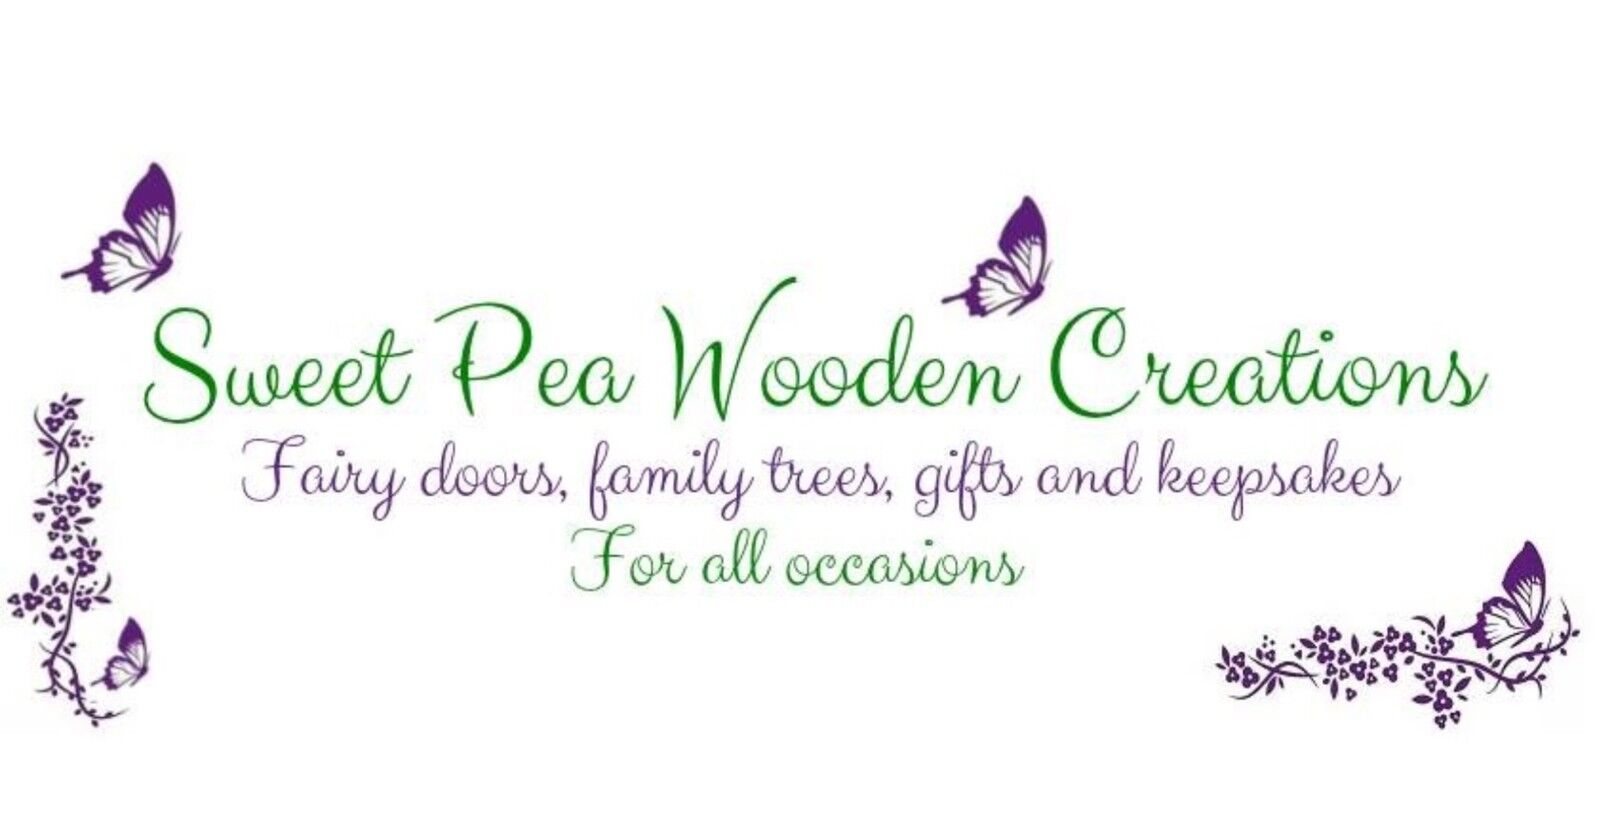 sweetpeawoodencreations